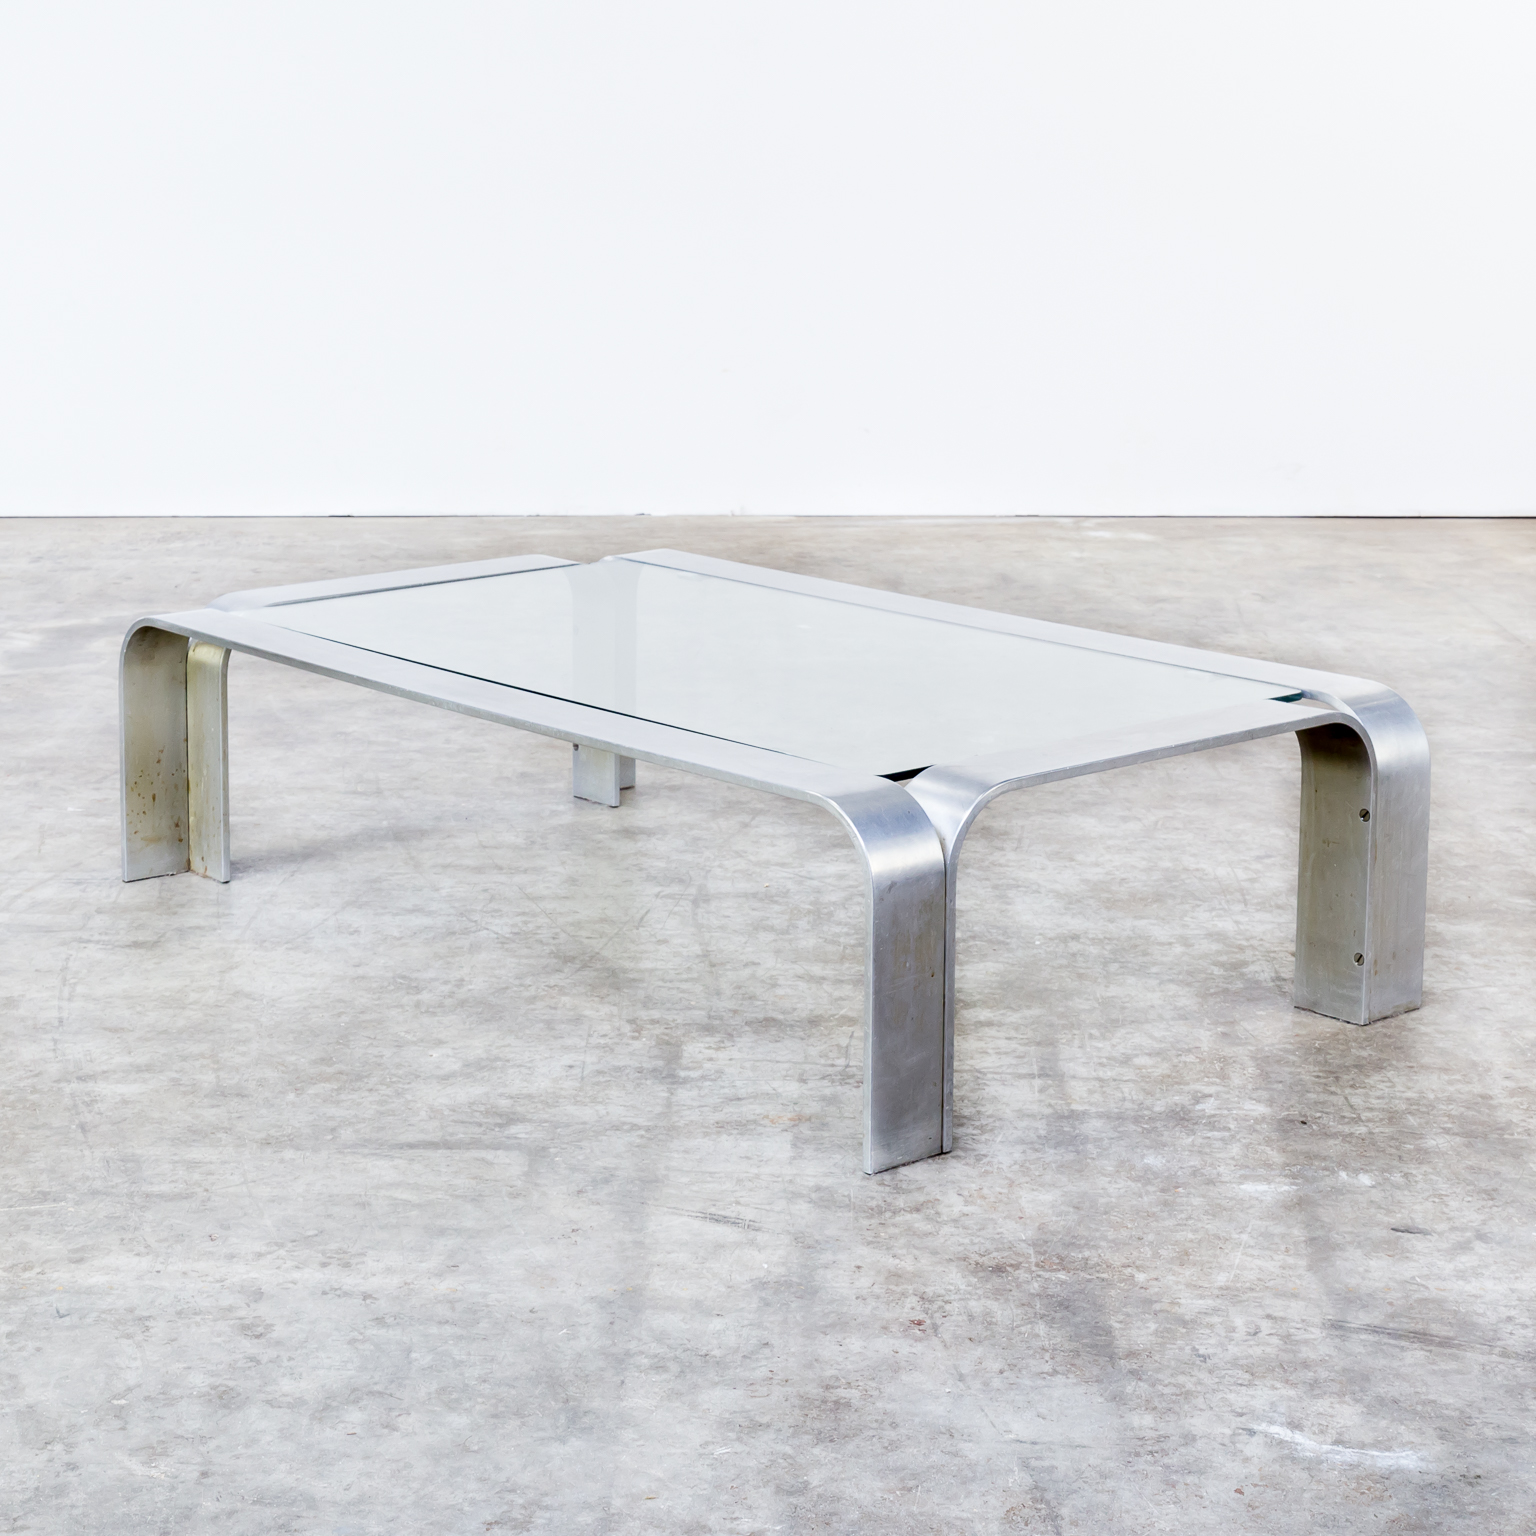 90s Coffee Table in Aluminium and Glass